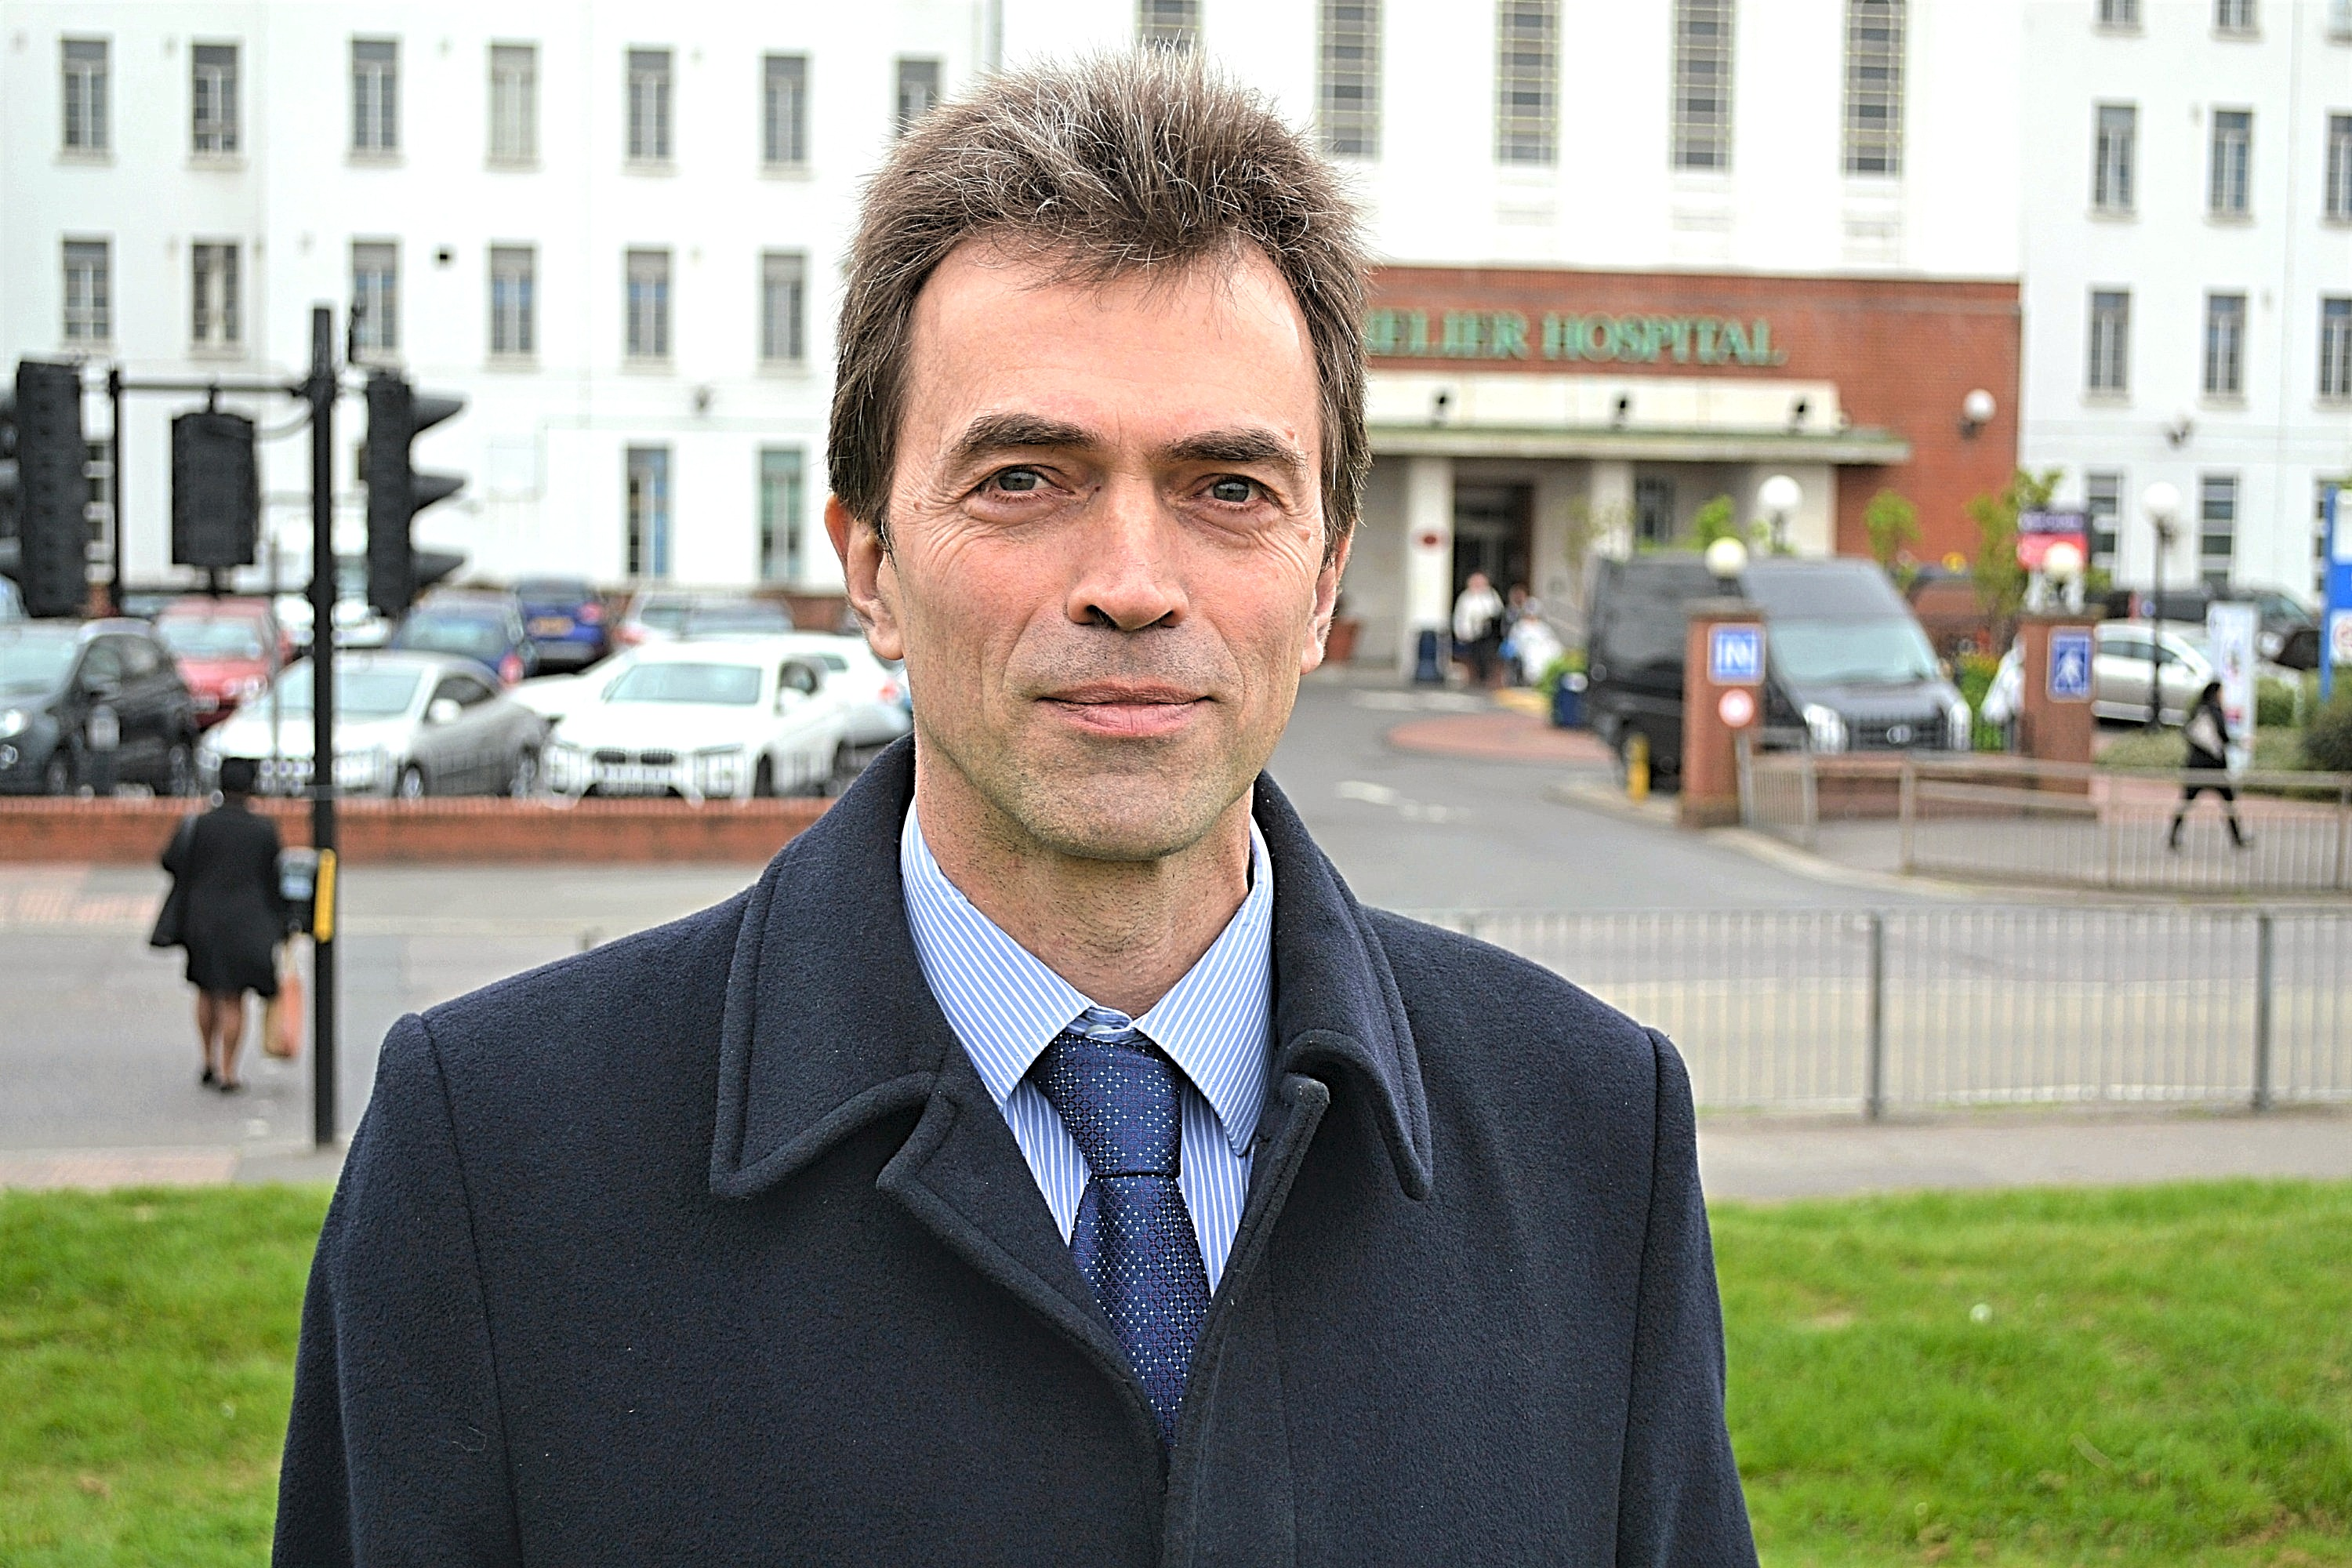 Rt Hon Tom Brake, Lib Dem MP for Carshalton and Wallington &Shadow Secretary of State for Exiting the EU